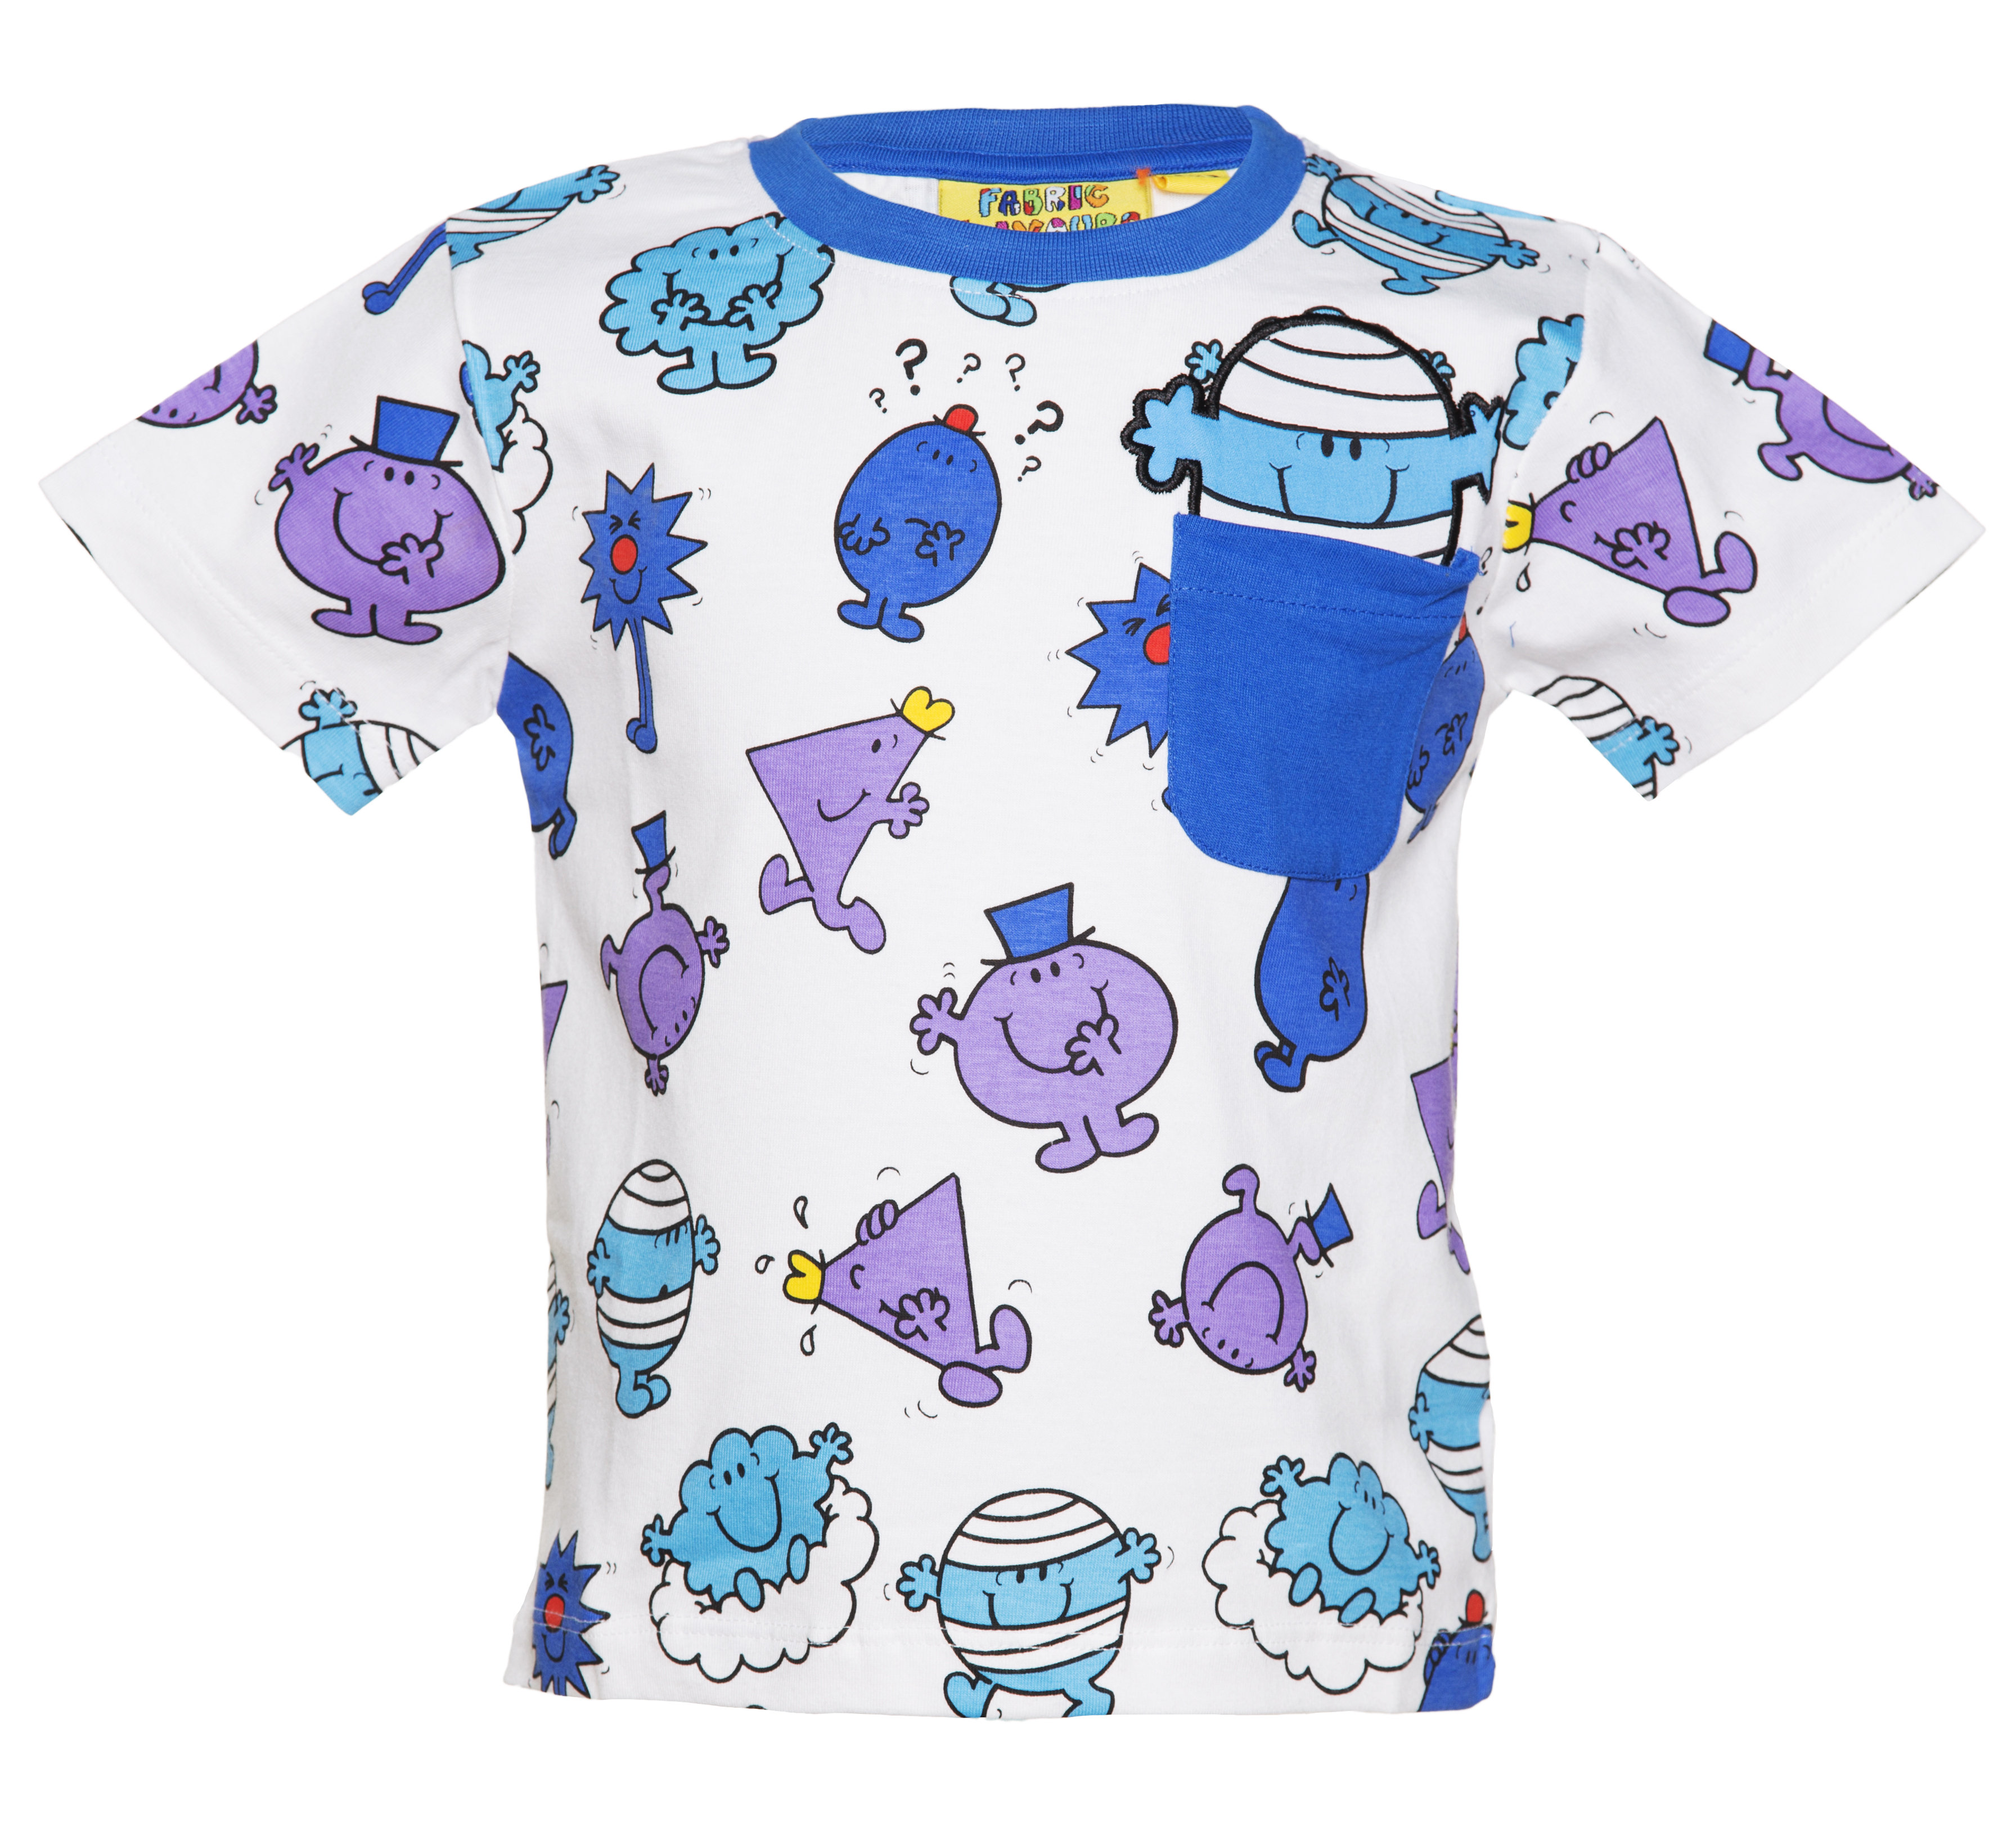 Blue apron kidd - Kids White And Blue Mr Men Repeat Print T Shirt From Fabric Flavours Made From 100 Cotton Blue Collar And Pocket Detail Embroidered Mr Bump Applique